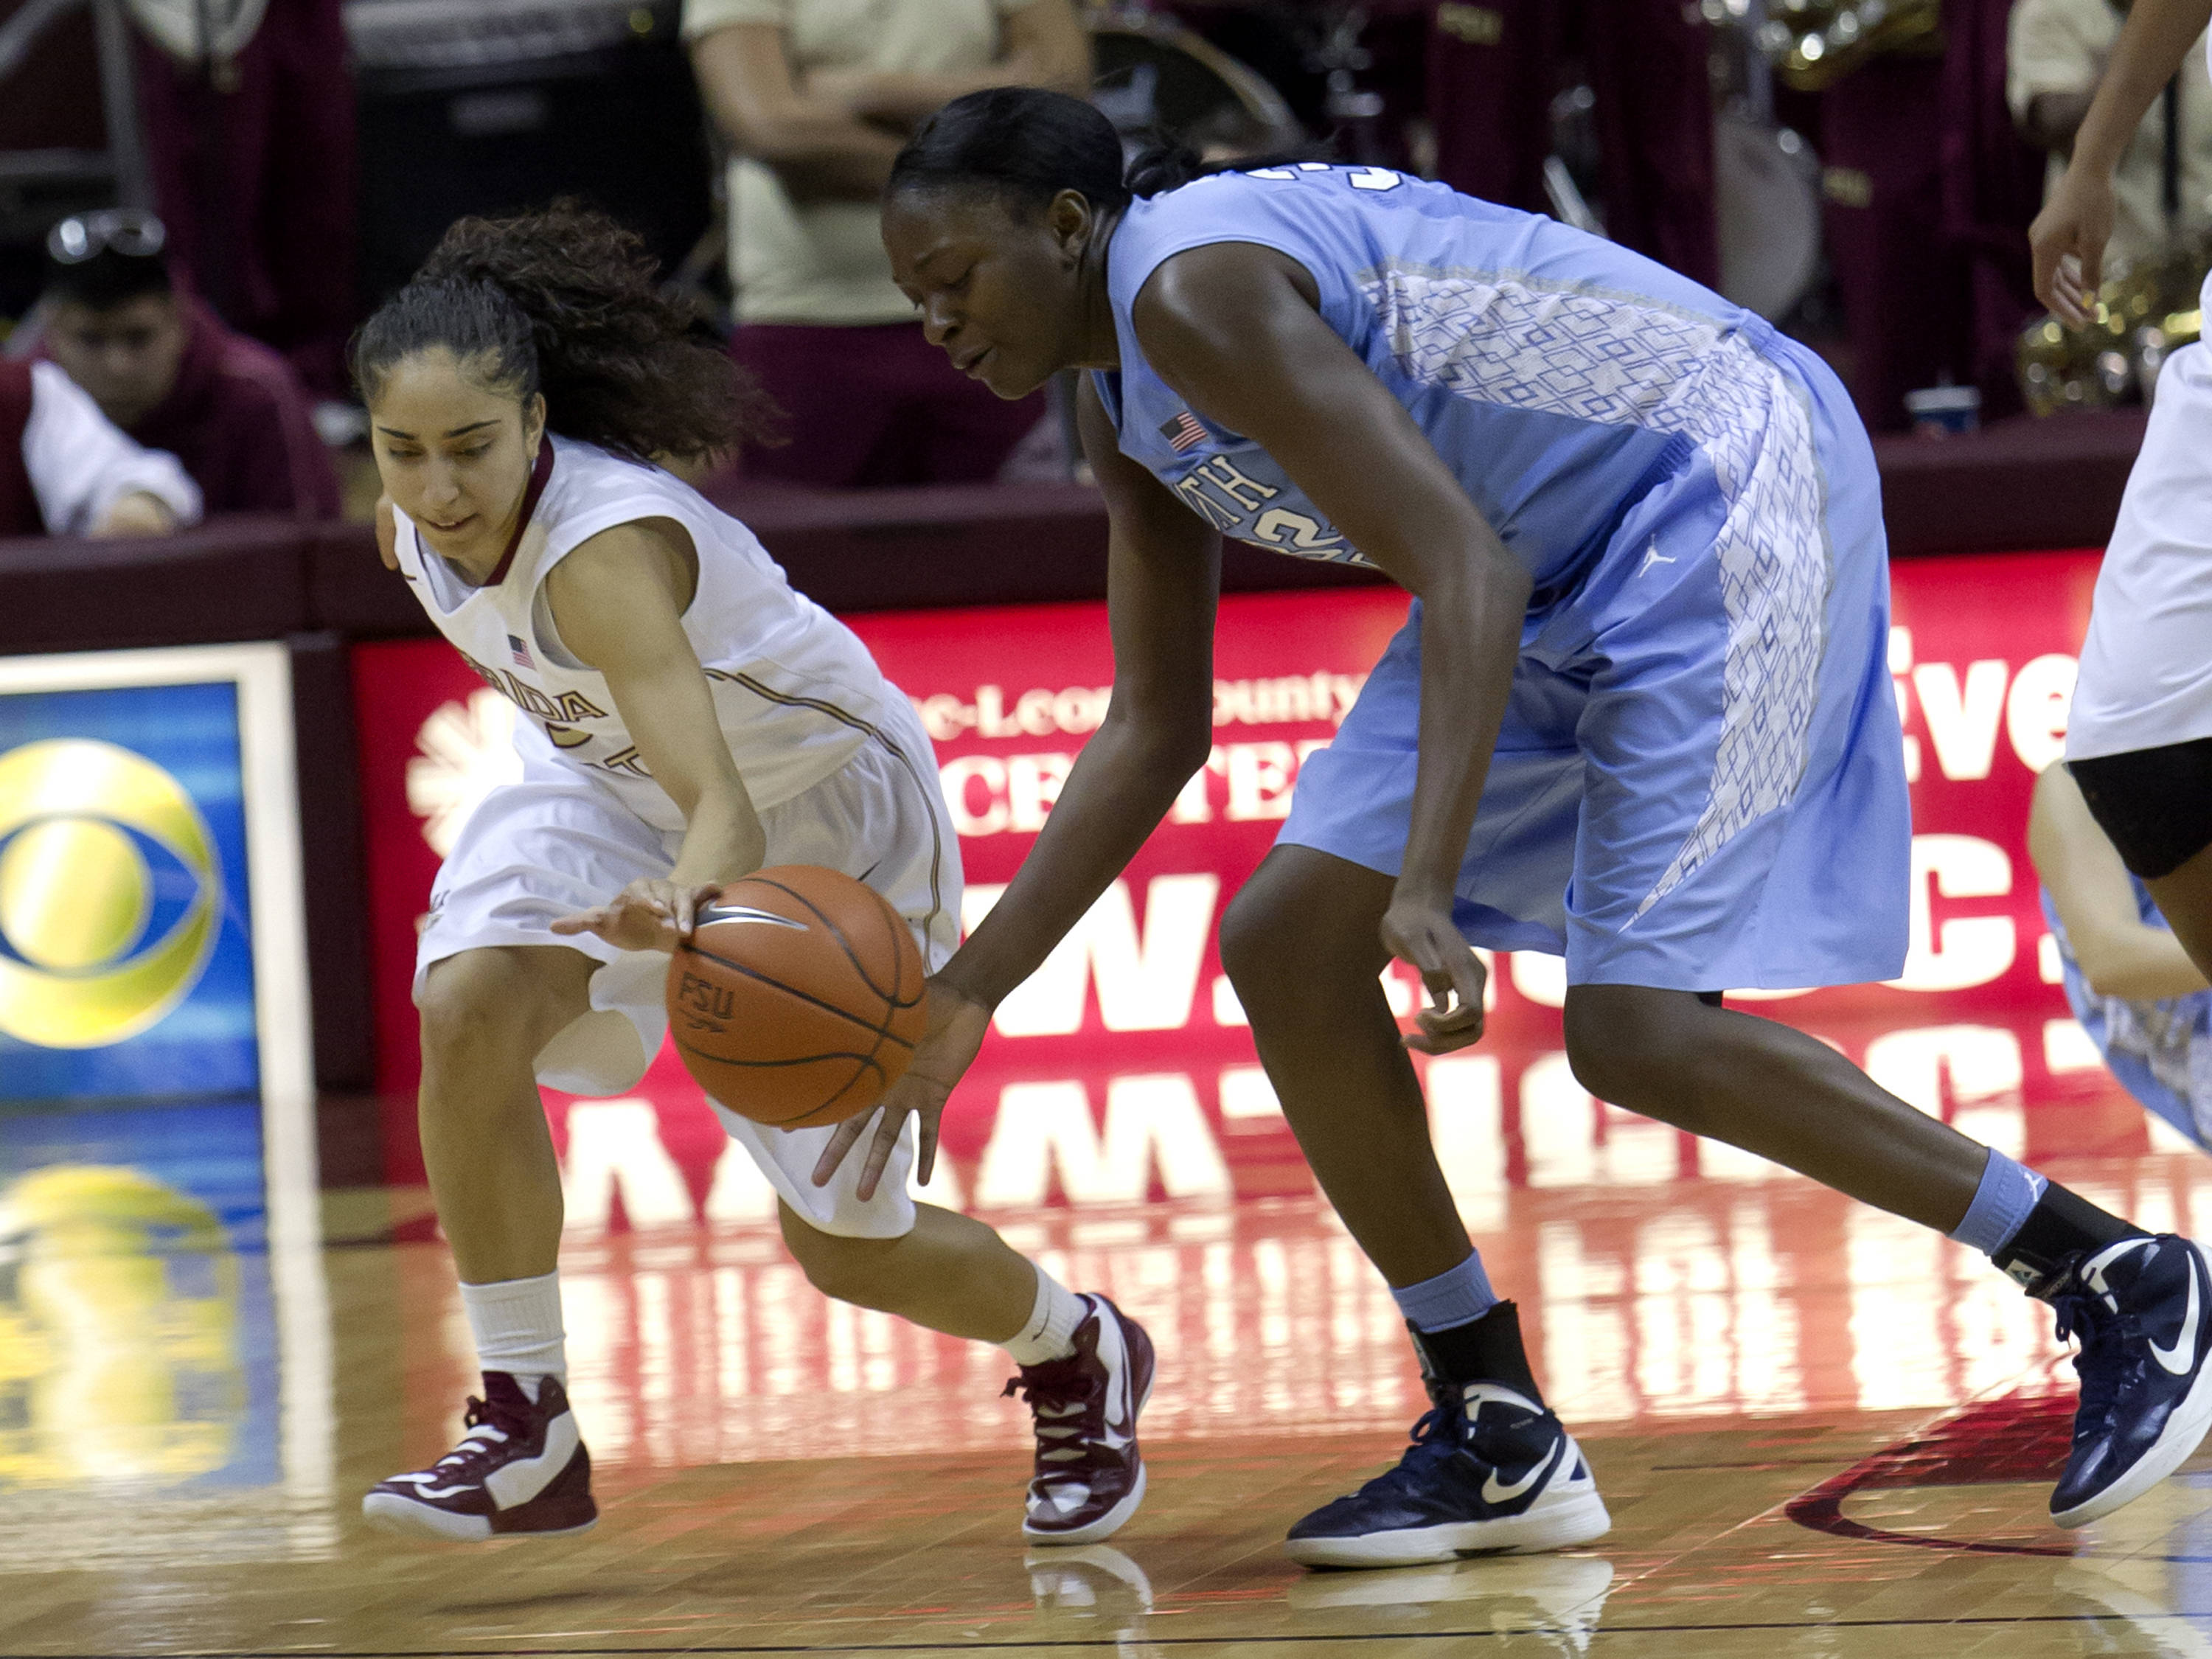 Cheetah Delgado (5), FSU vs NC, 02/17/13. (Photo by Steve Musco)